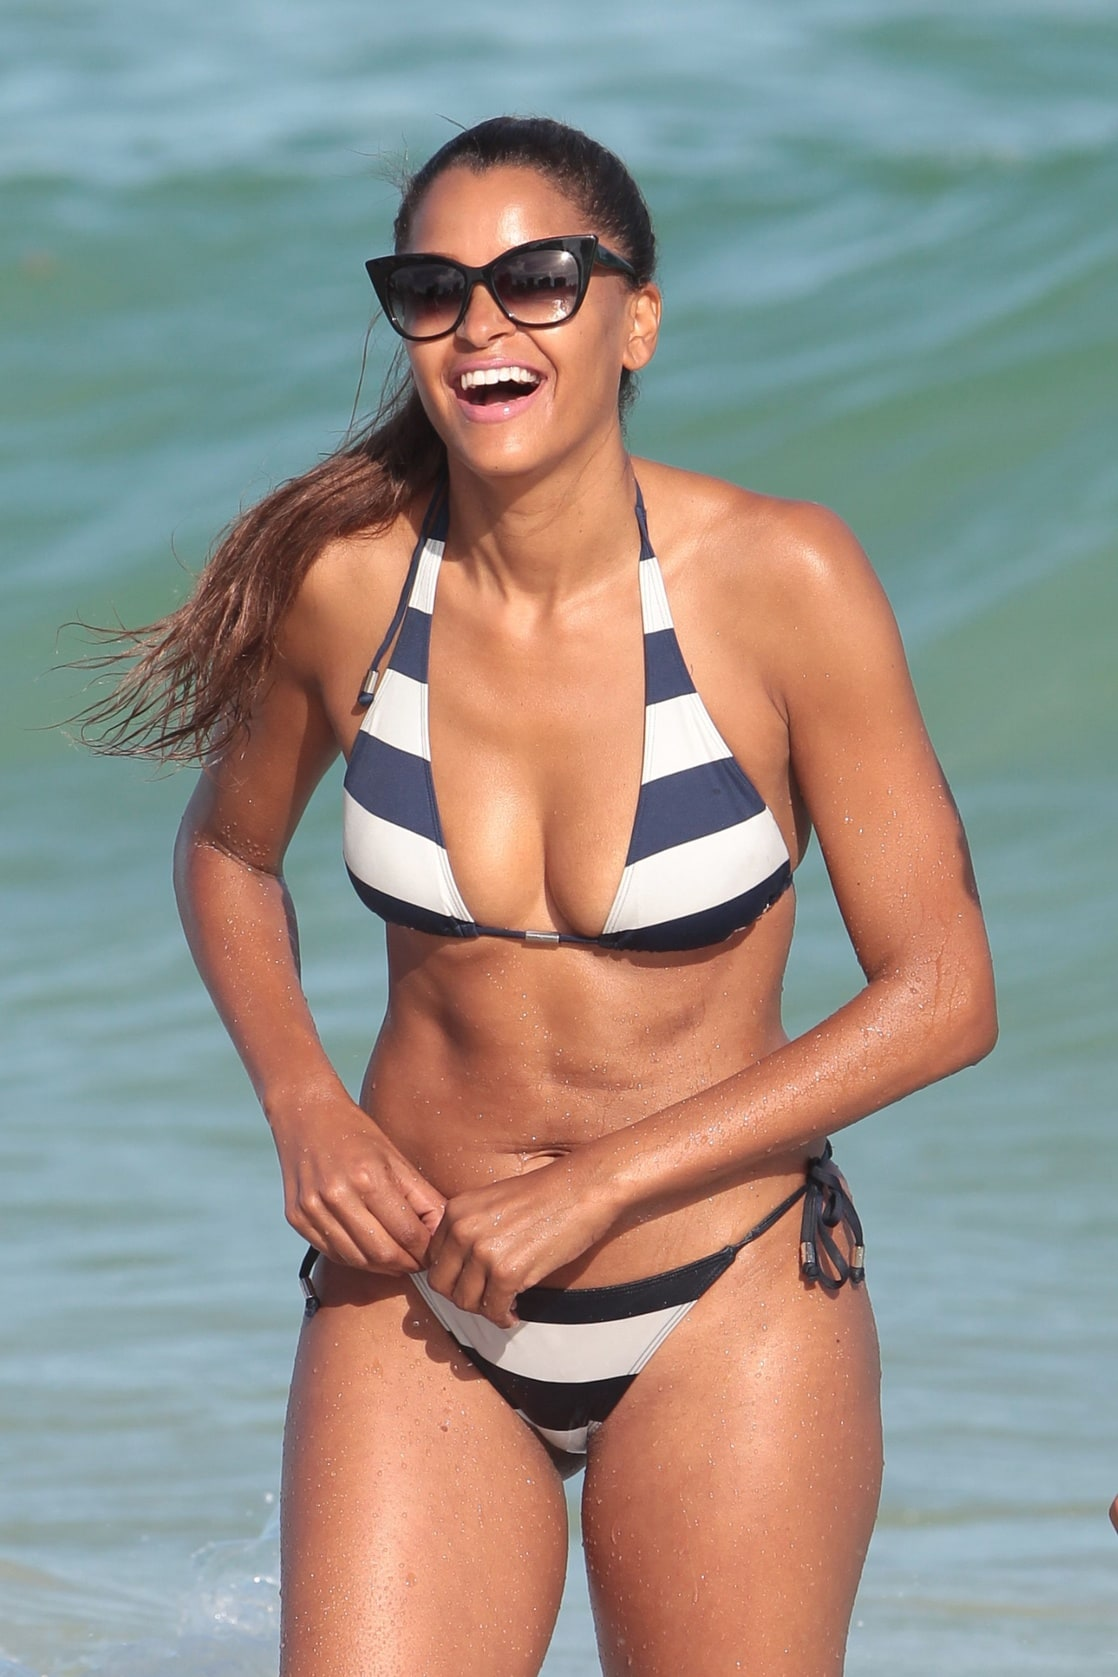 Fotos Claudia Jordan nudes (95 foto and video), Sexy, Leaked, Twitter, swimsuit 2019